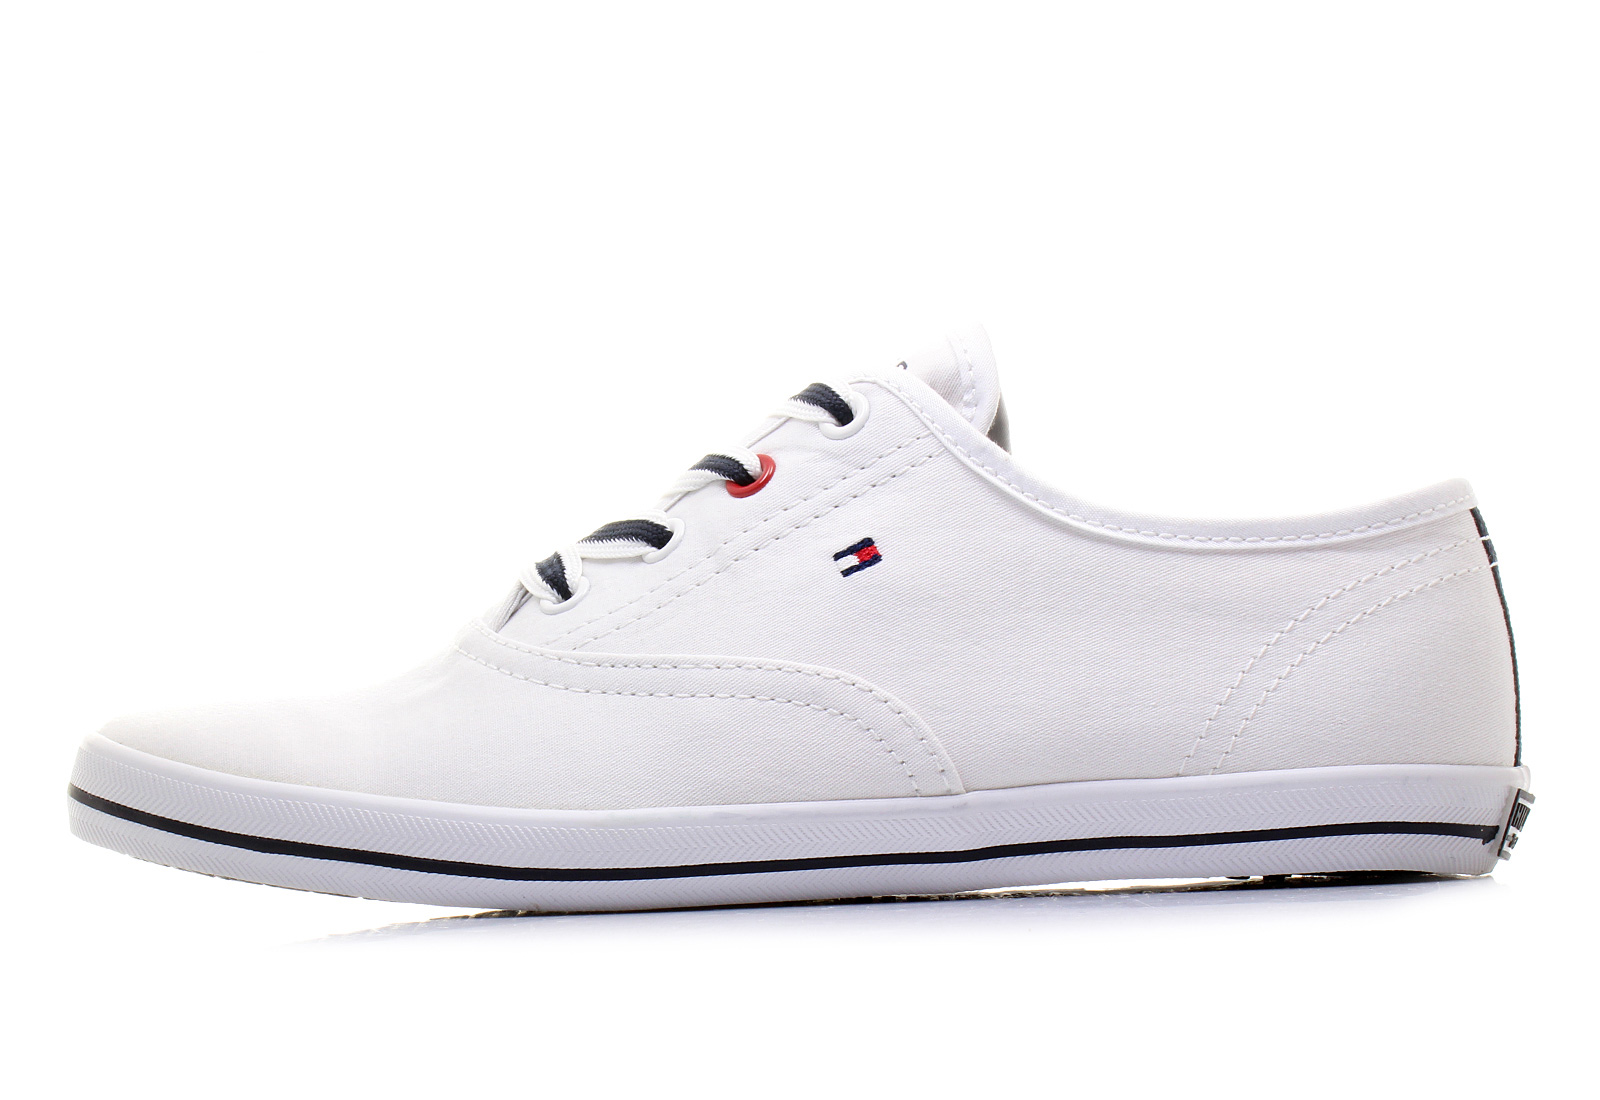 Tommy Hilfiger Cipő - Victoria 1d - 15S-9050-100 - Office Shoes ... f84b1f74a2